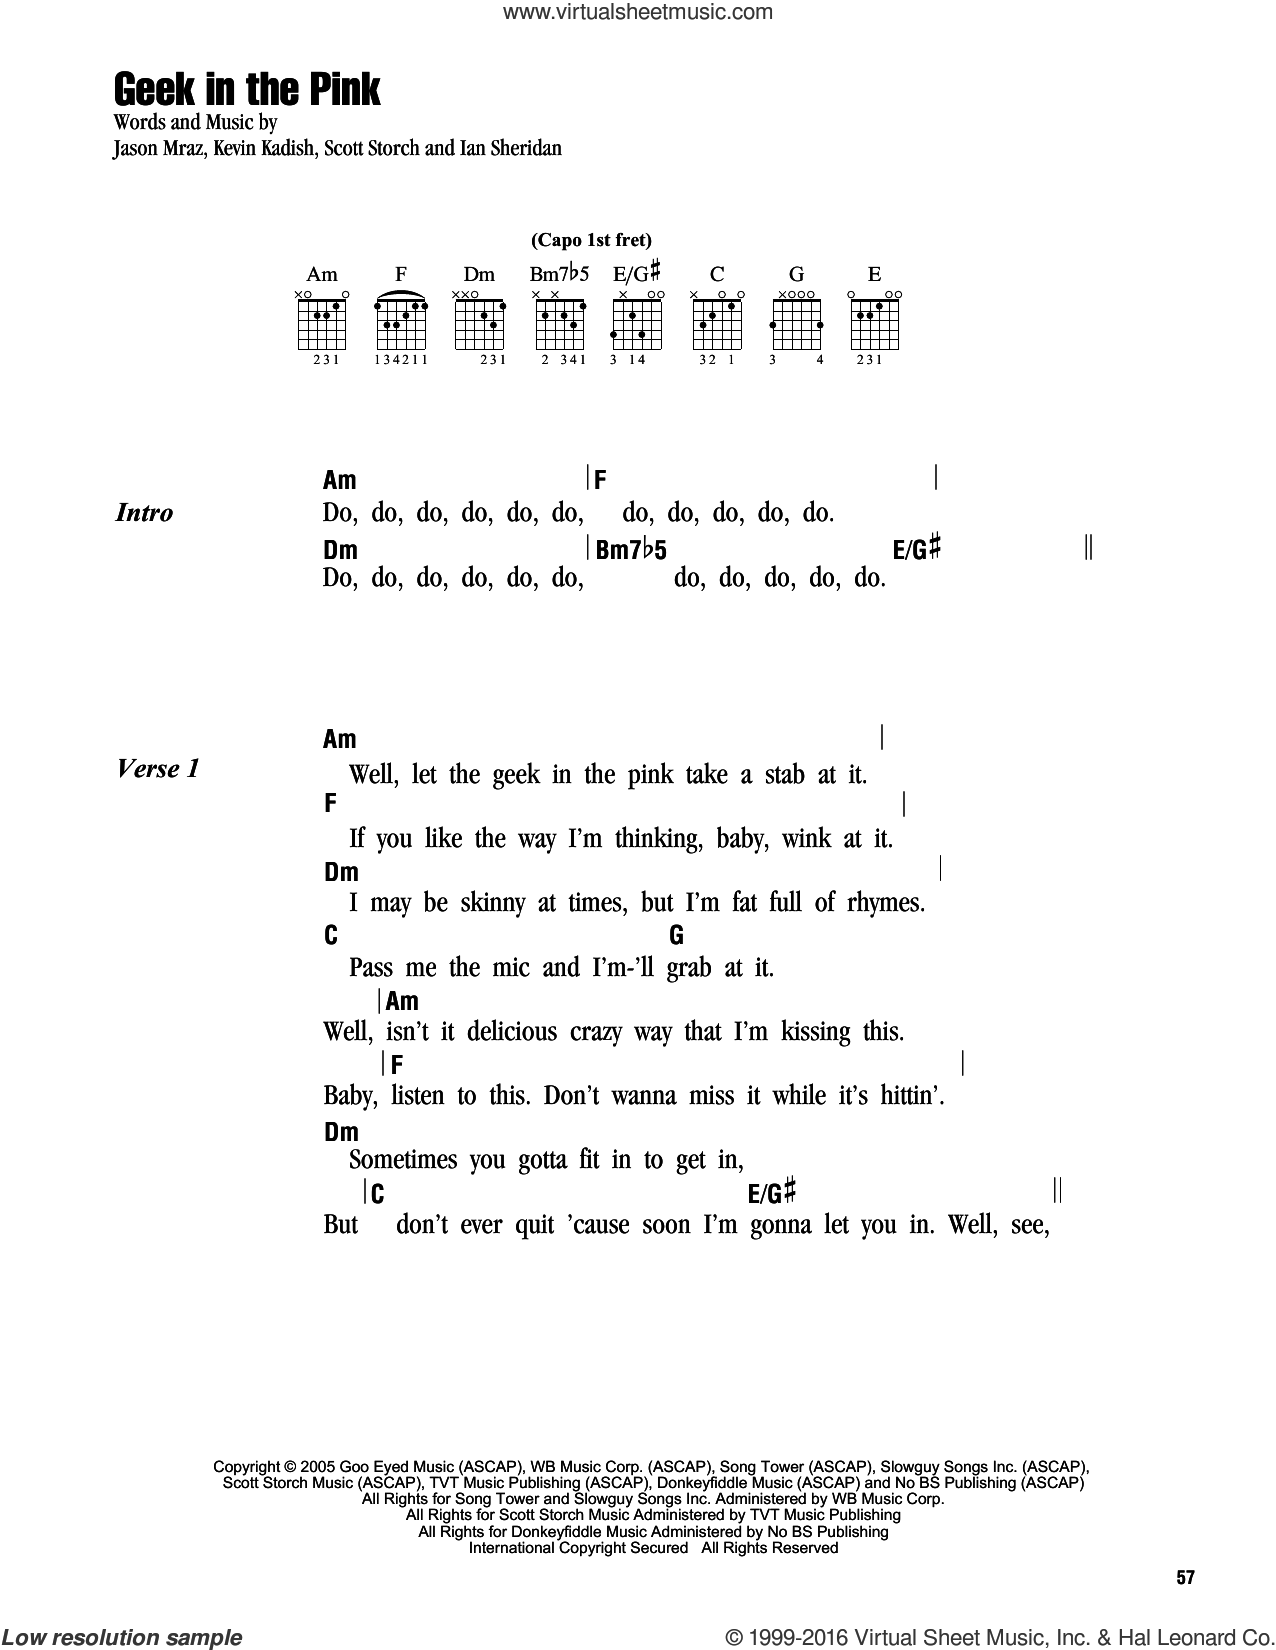 Geek In The Pink sheet music for guitar (chords) by Jason Mraz, Ian Sheridan, Kevin Kadish and Scott Storch, intermediate